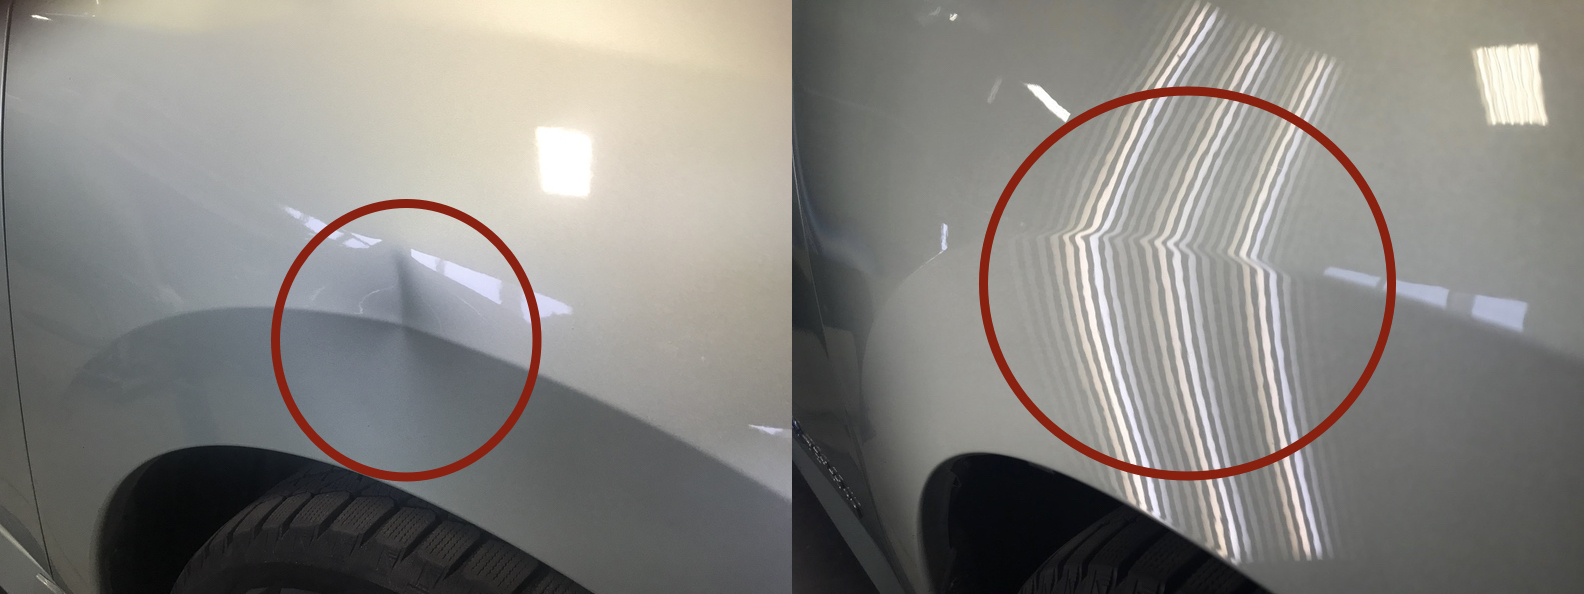 BEFORE & AFTER: DENT CREASE IN FENDER & BODY LINE; DAMAGE REMOVED & REPAIRED WITH PDR BY THE DENT GUY